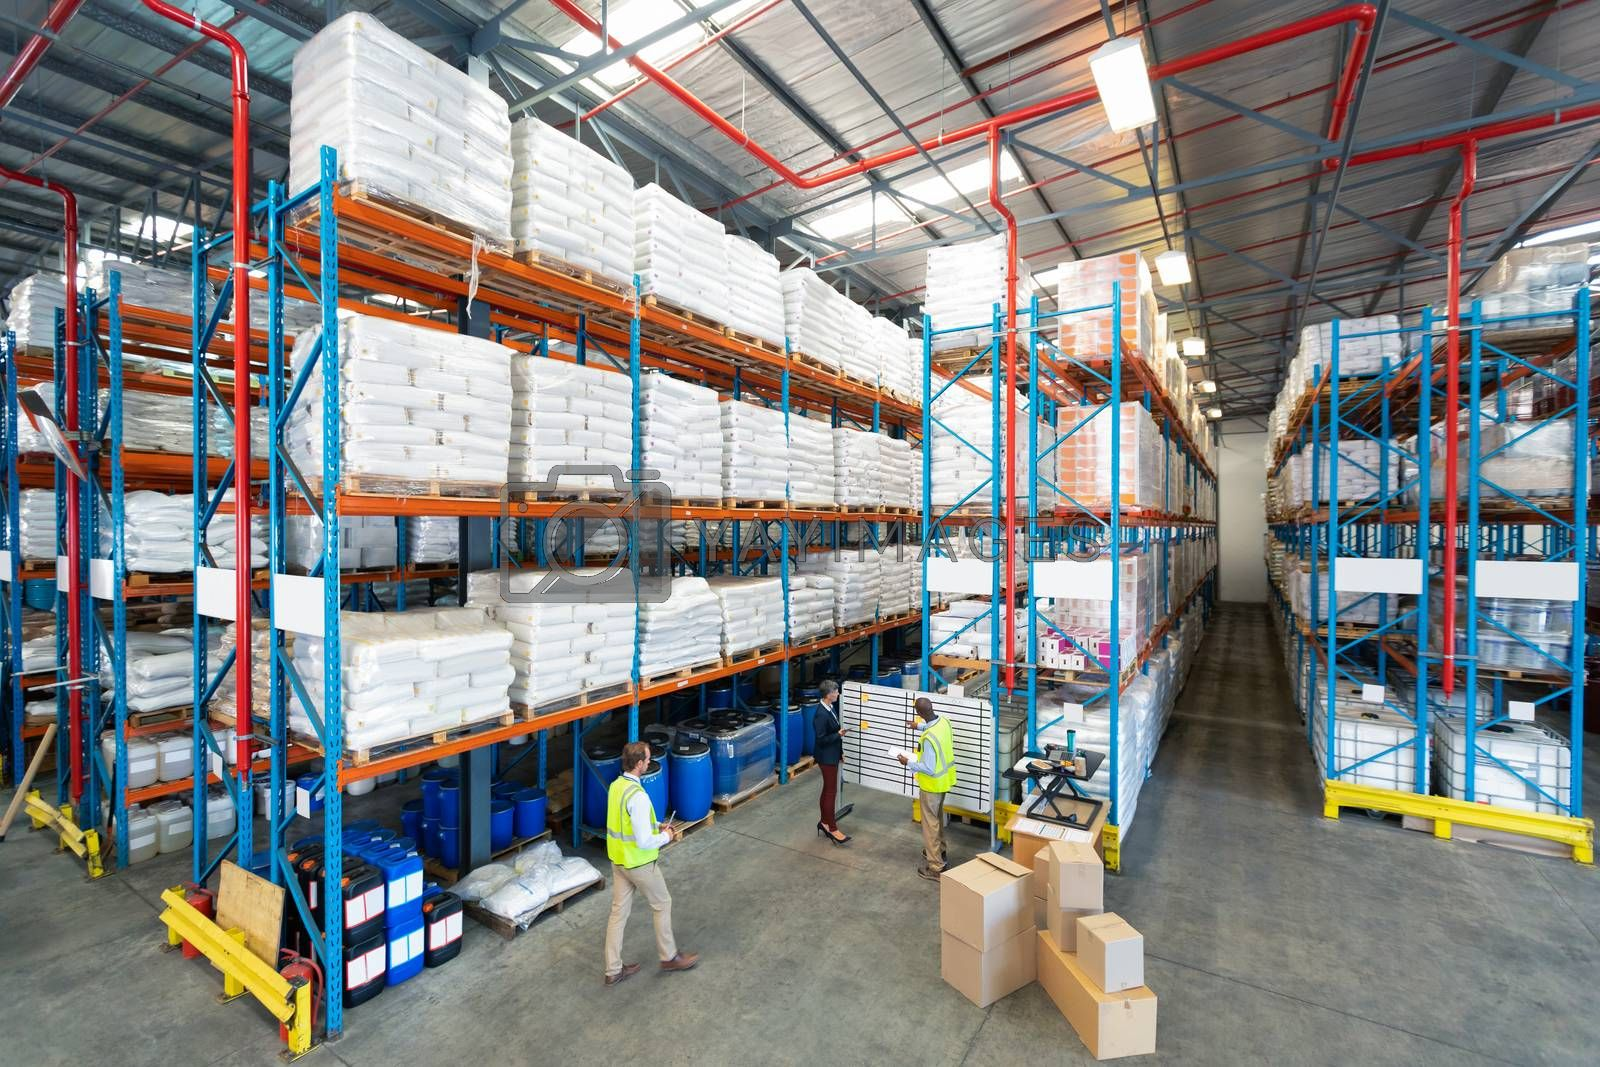 High angle view of mature diverse warehouse staff discussing over whiteboard in warehouse. This is a freight transportation and distribution warehouse. Industrial and industrial workers concept